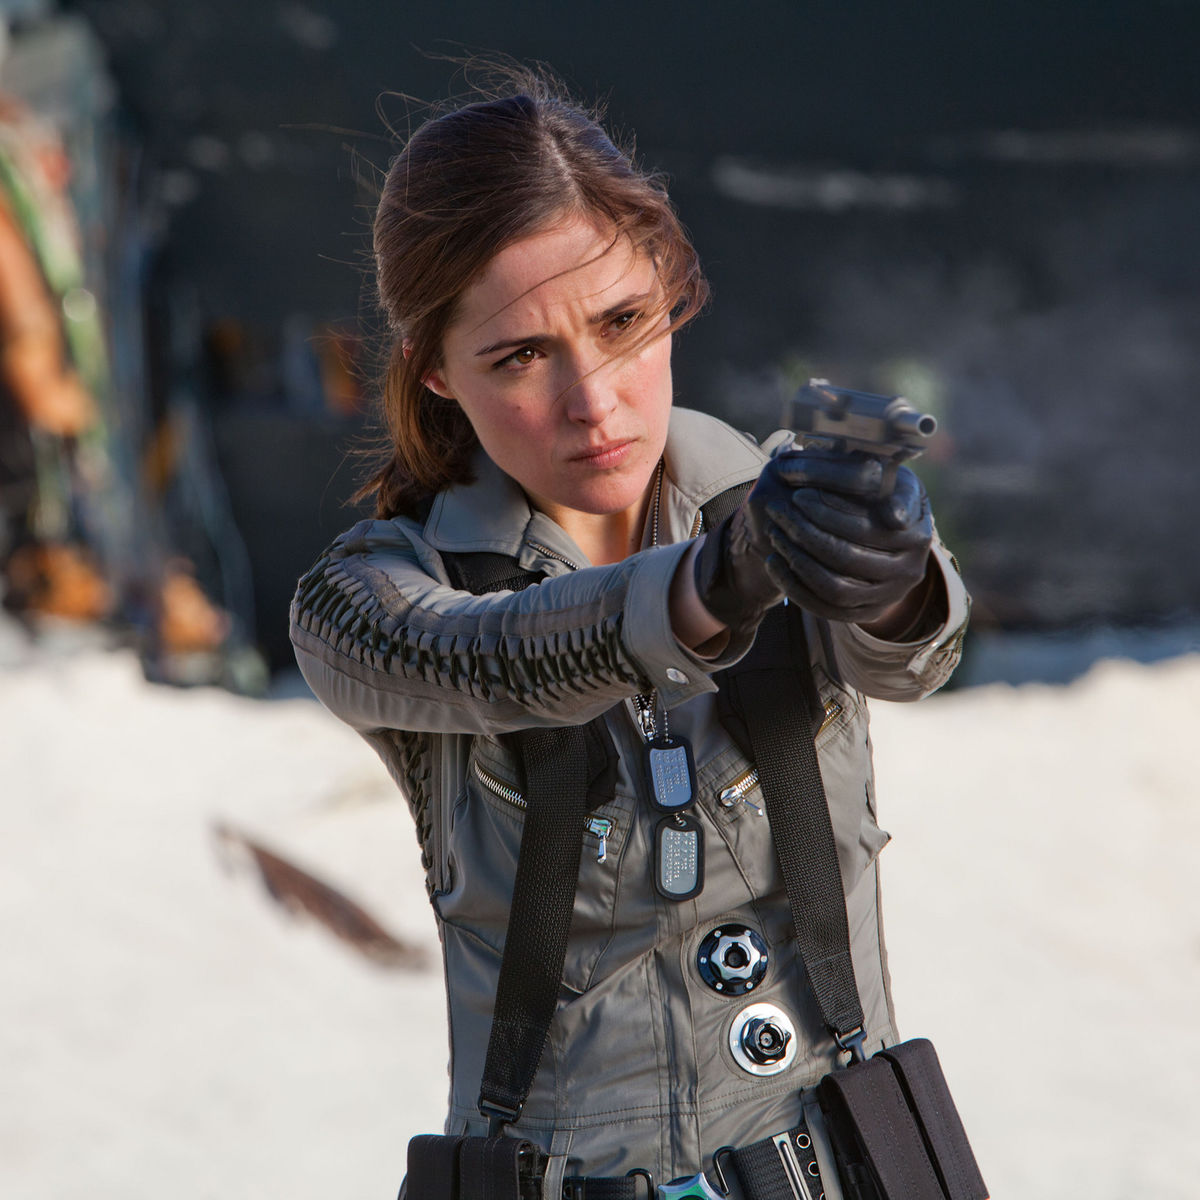 Rose-in-X-Men-First-Class-rose-byrne-22625596-2560-1707.jpeg